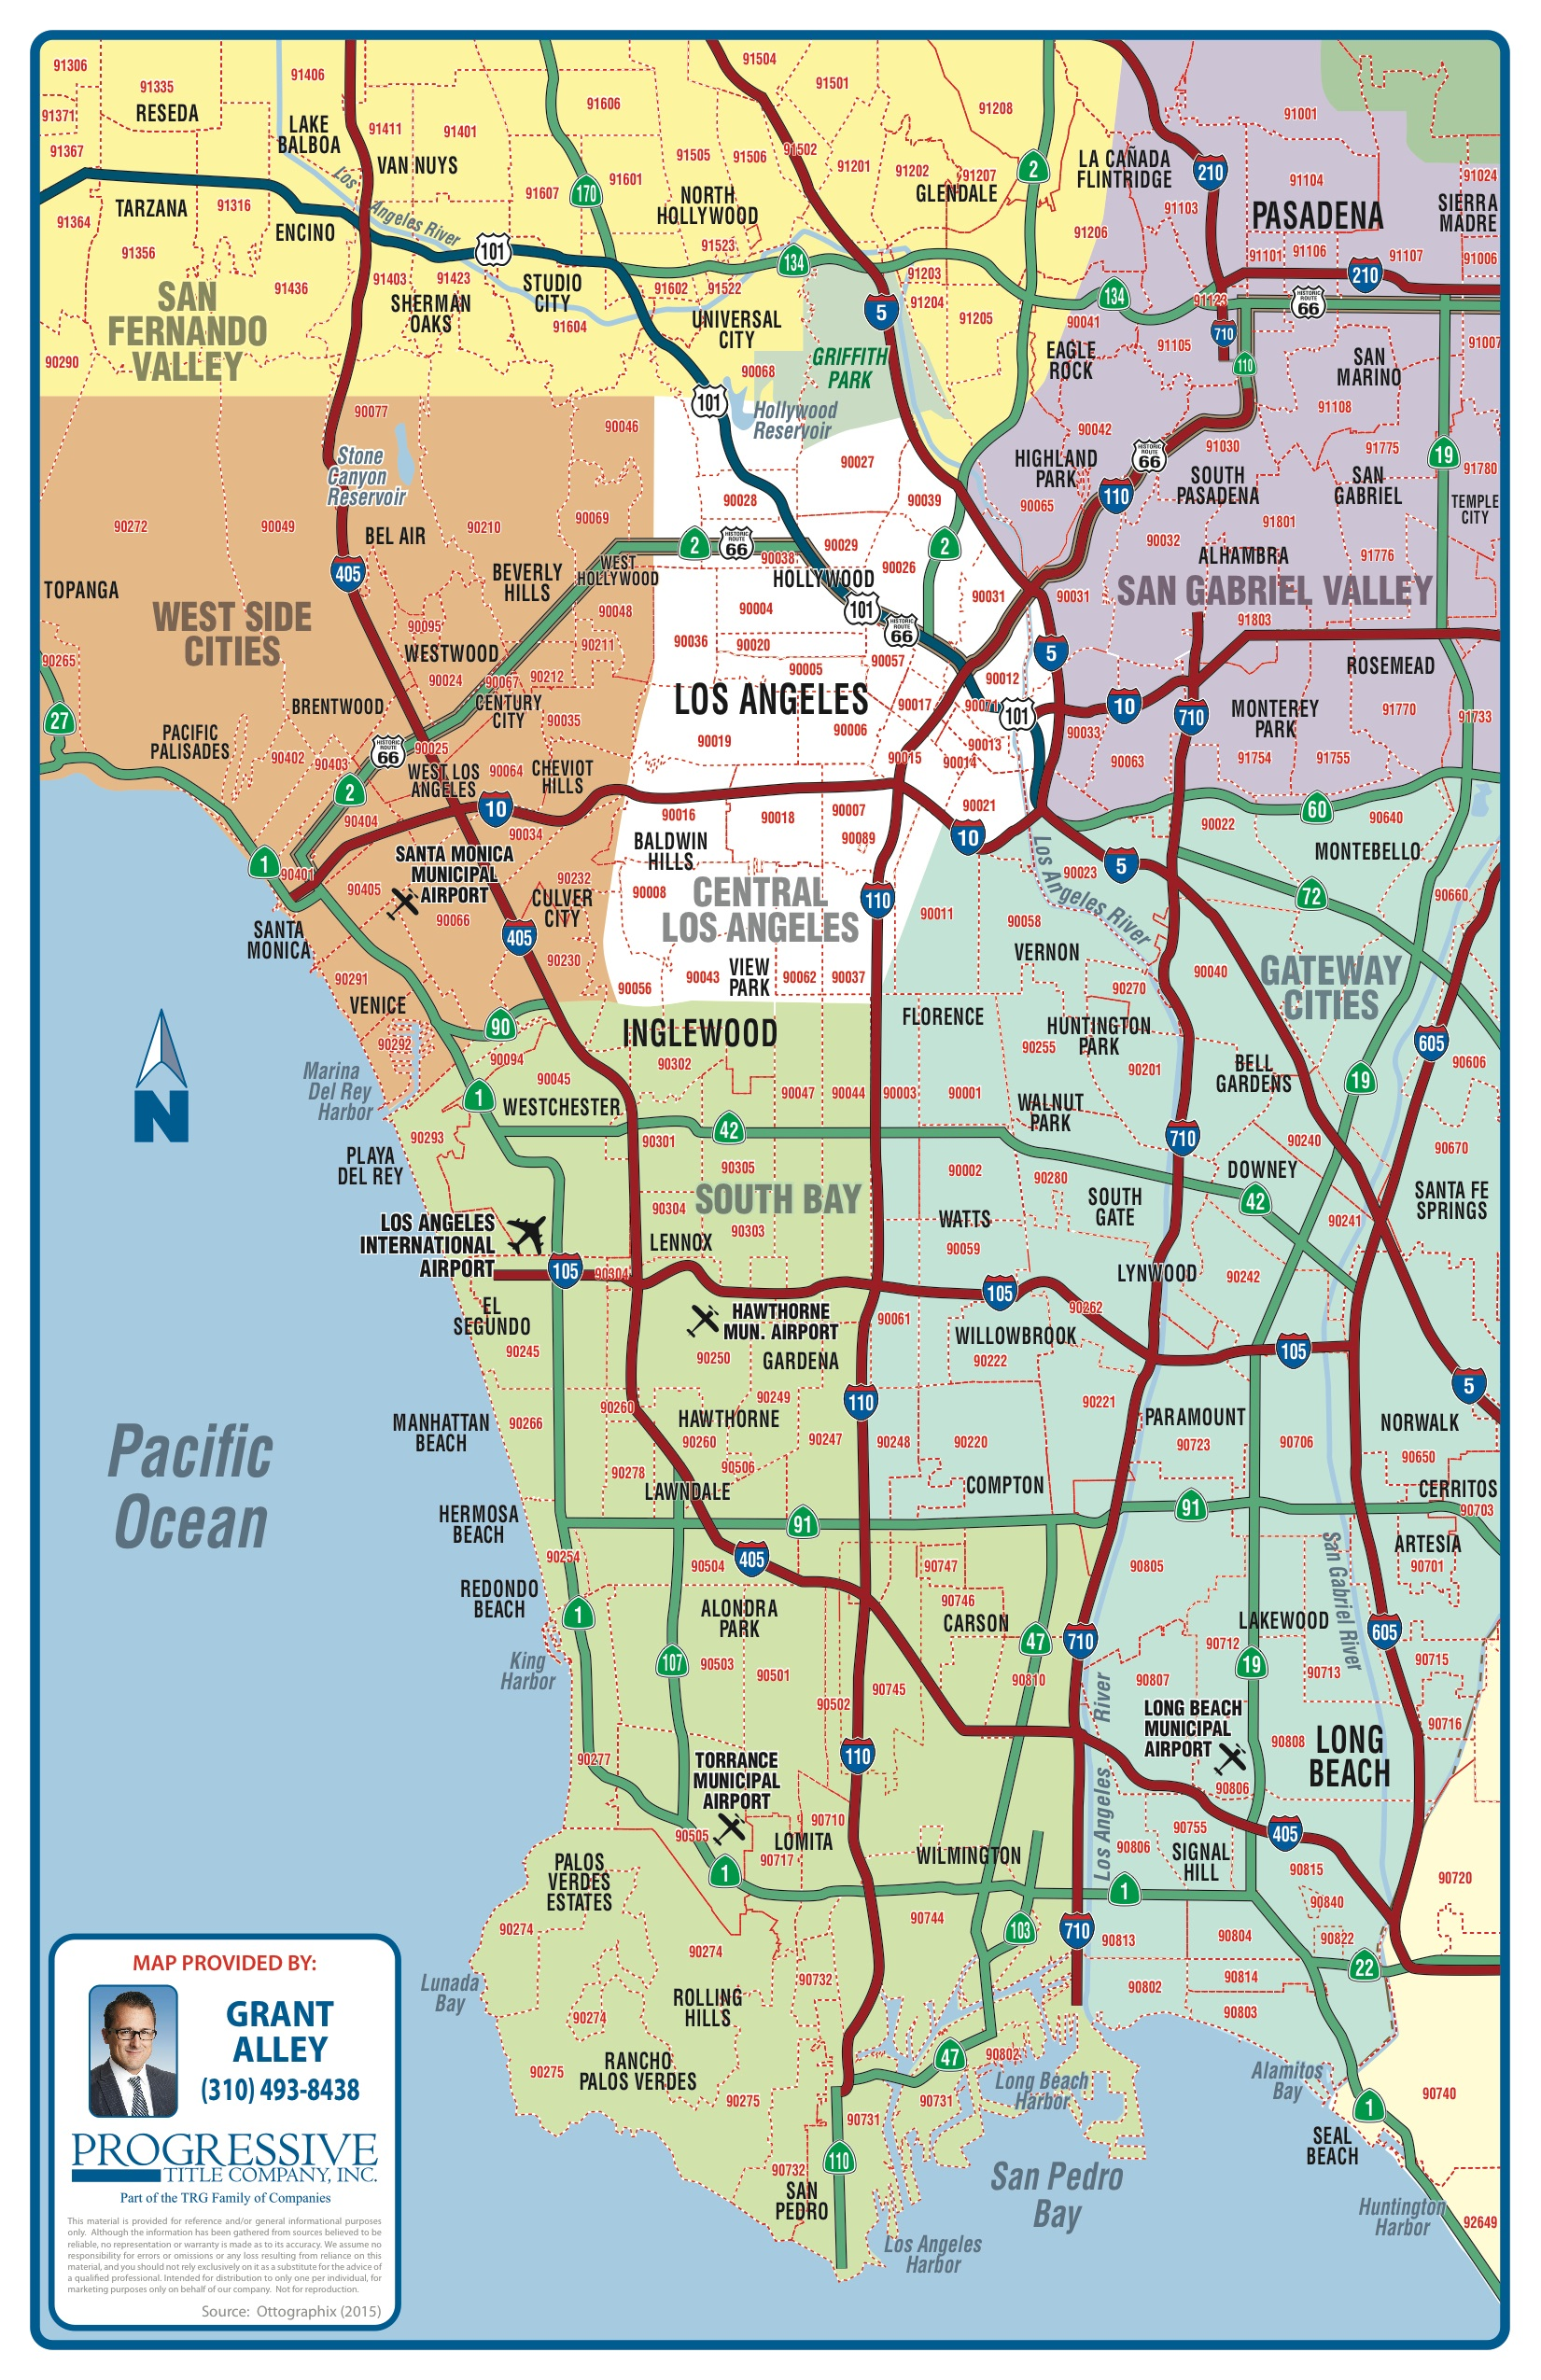 Los Angeles South Bay and surrounding areas map